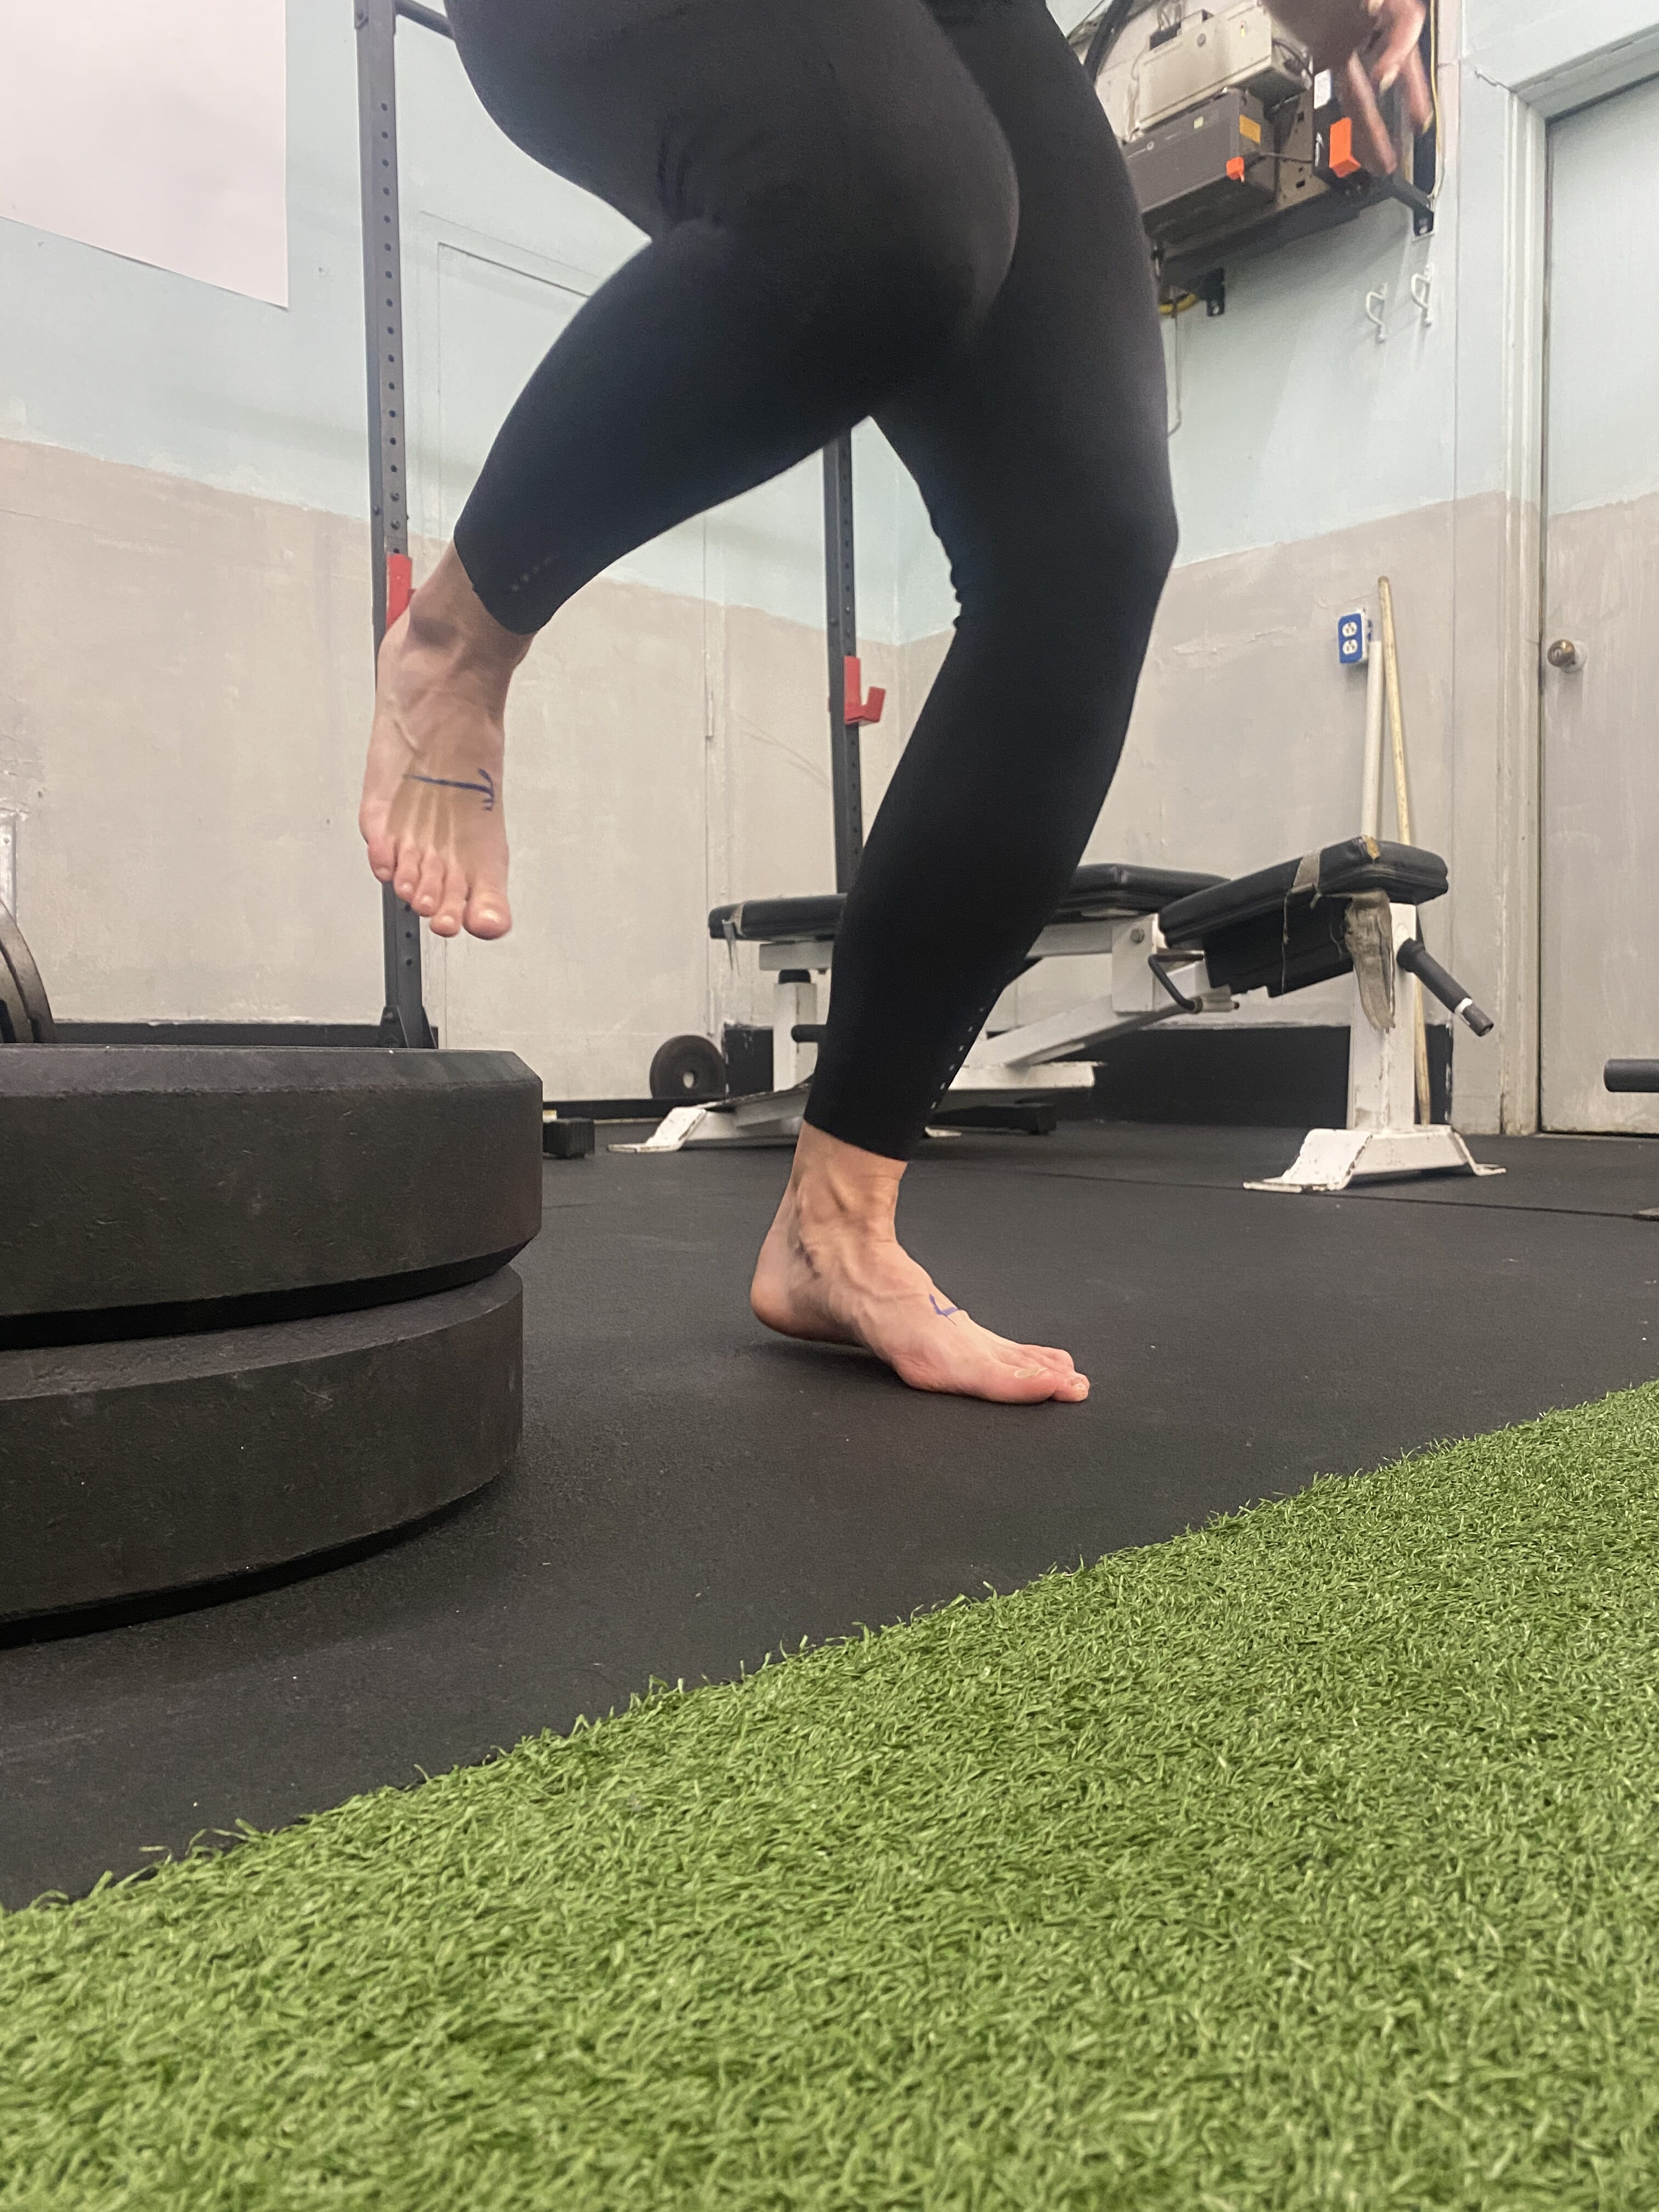 🦶🏽Are You Using Your Foot Arches? Probably Not🦶🏽⁠